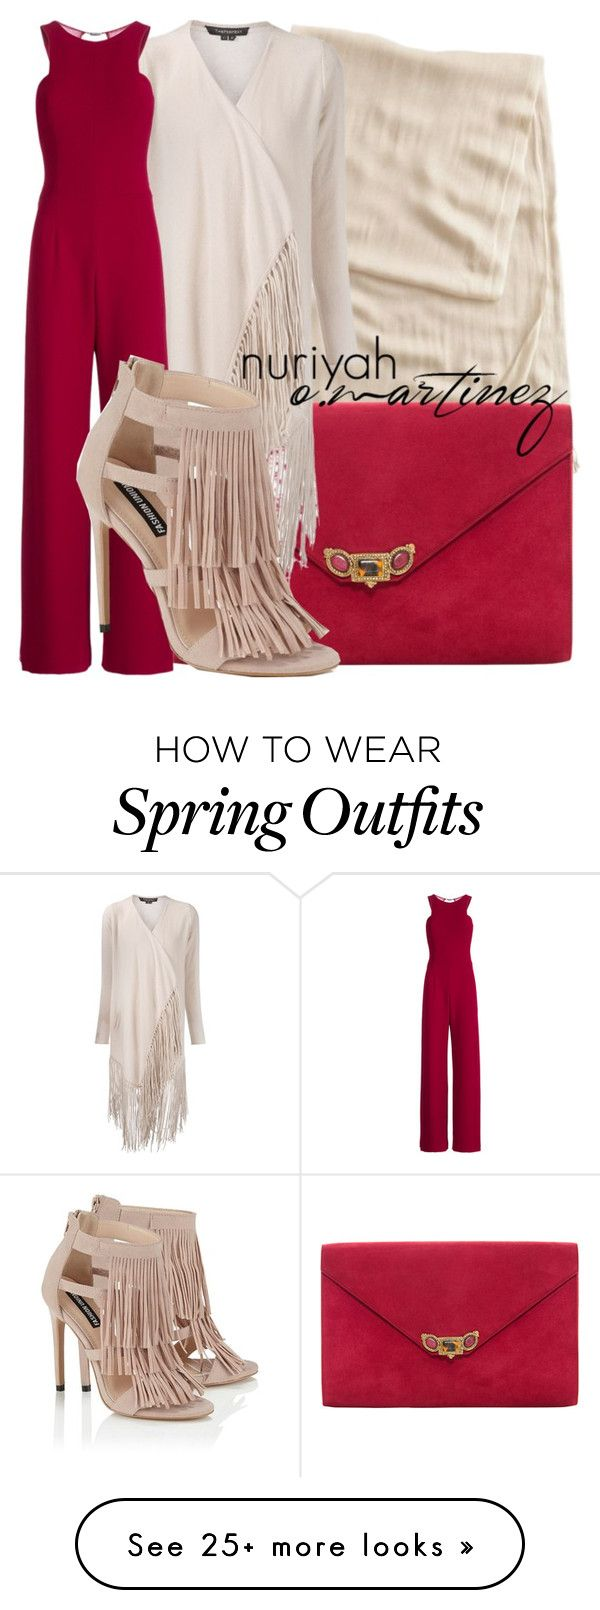 """""""Hijab Outfit #665"""" by hashtaghijab on Polyvore featuring TravelSmith, ThePerfext, Halston Heritage, Lipsy and hijab"""